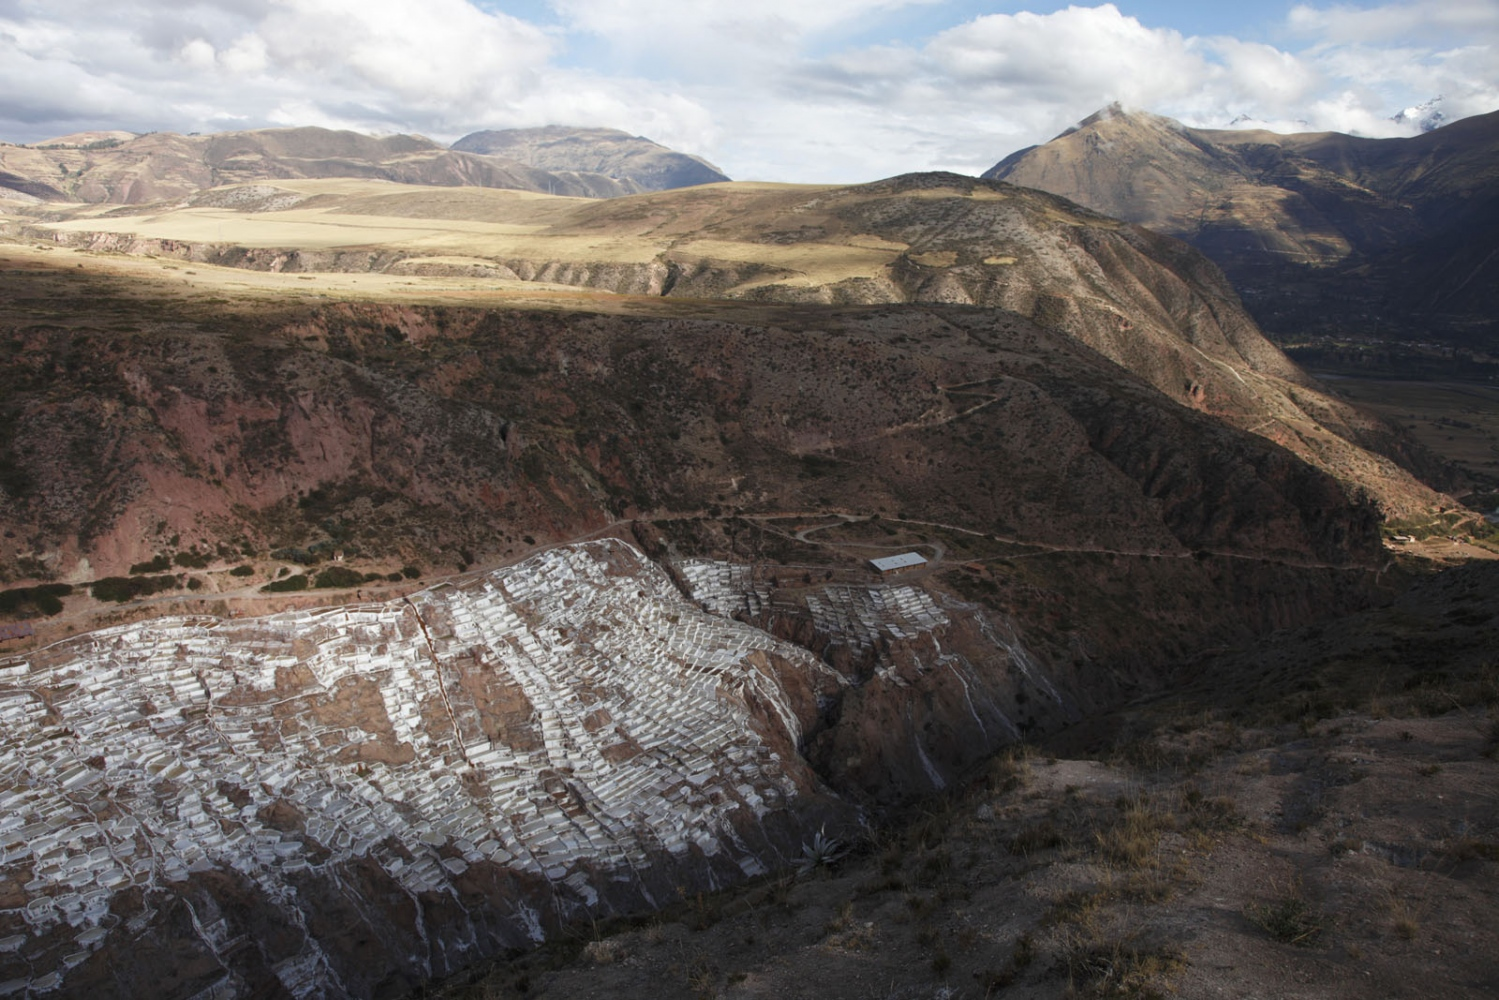 The Inca made salt terraces of Salinas de Maras in the Cusco Valley, Peru.